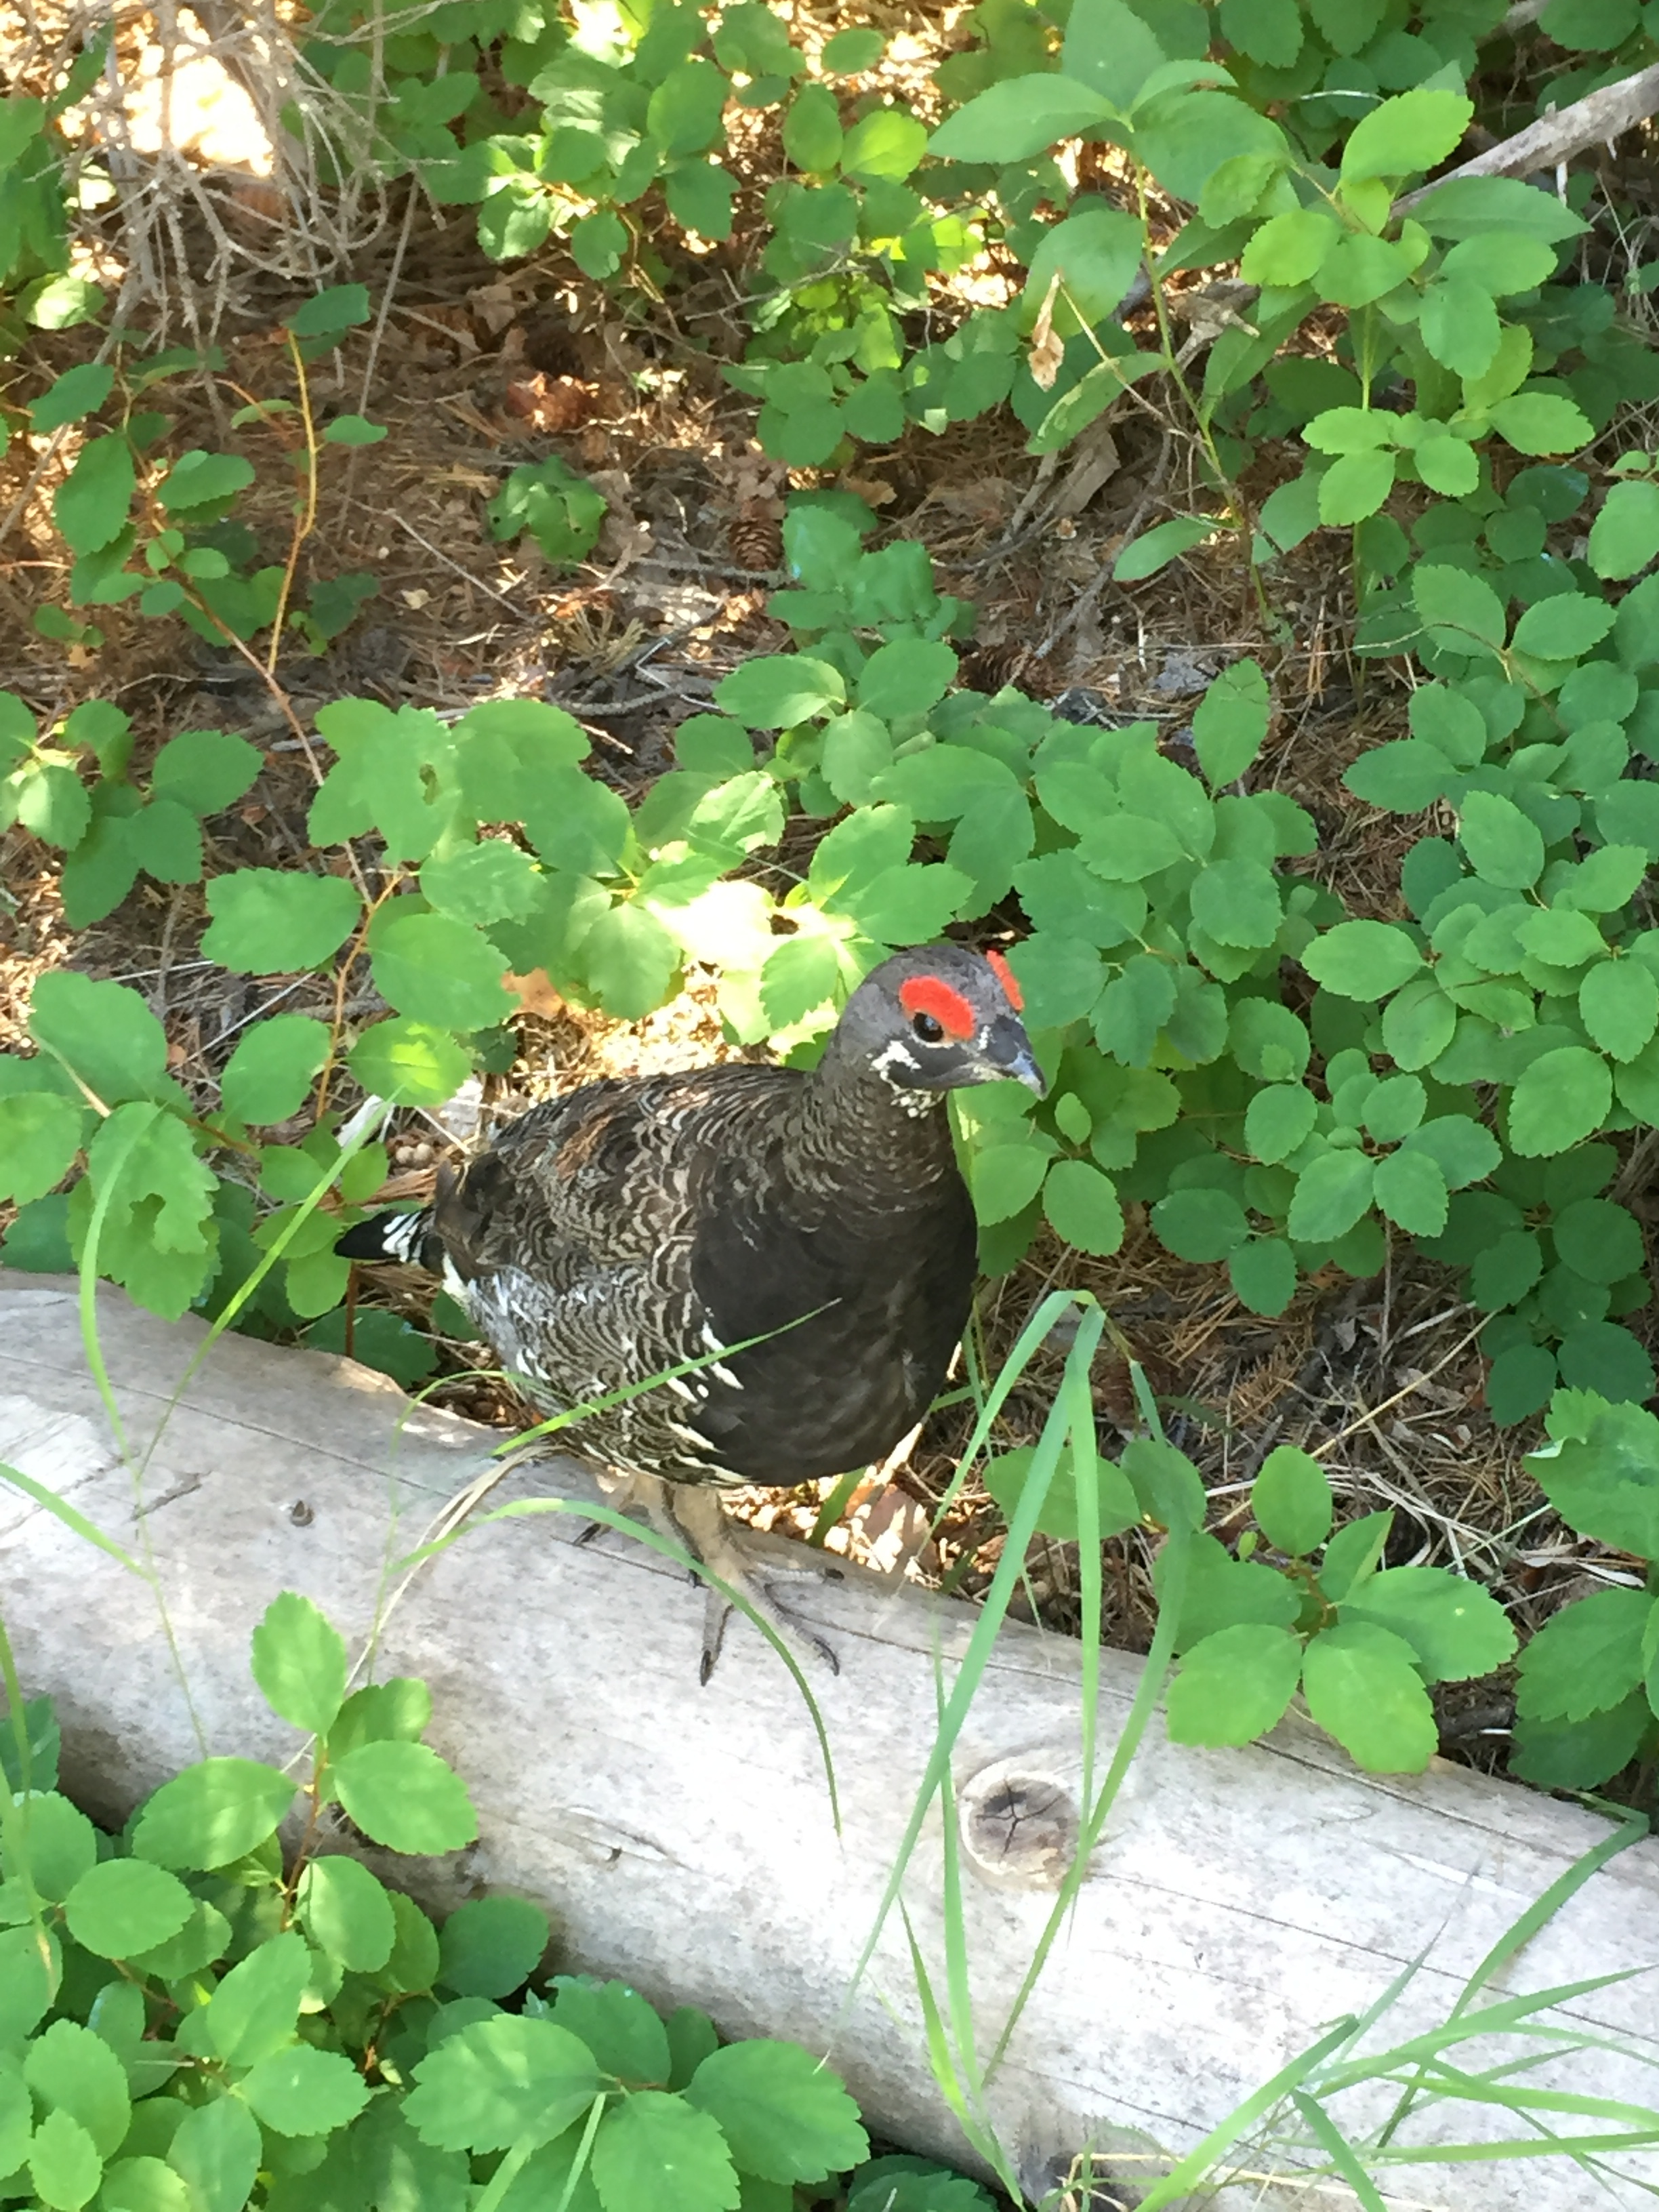 A little Spruce Grouse that found us very interesting.